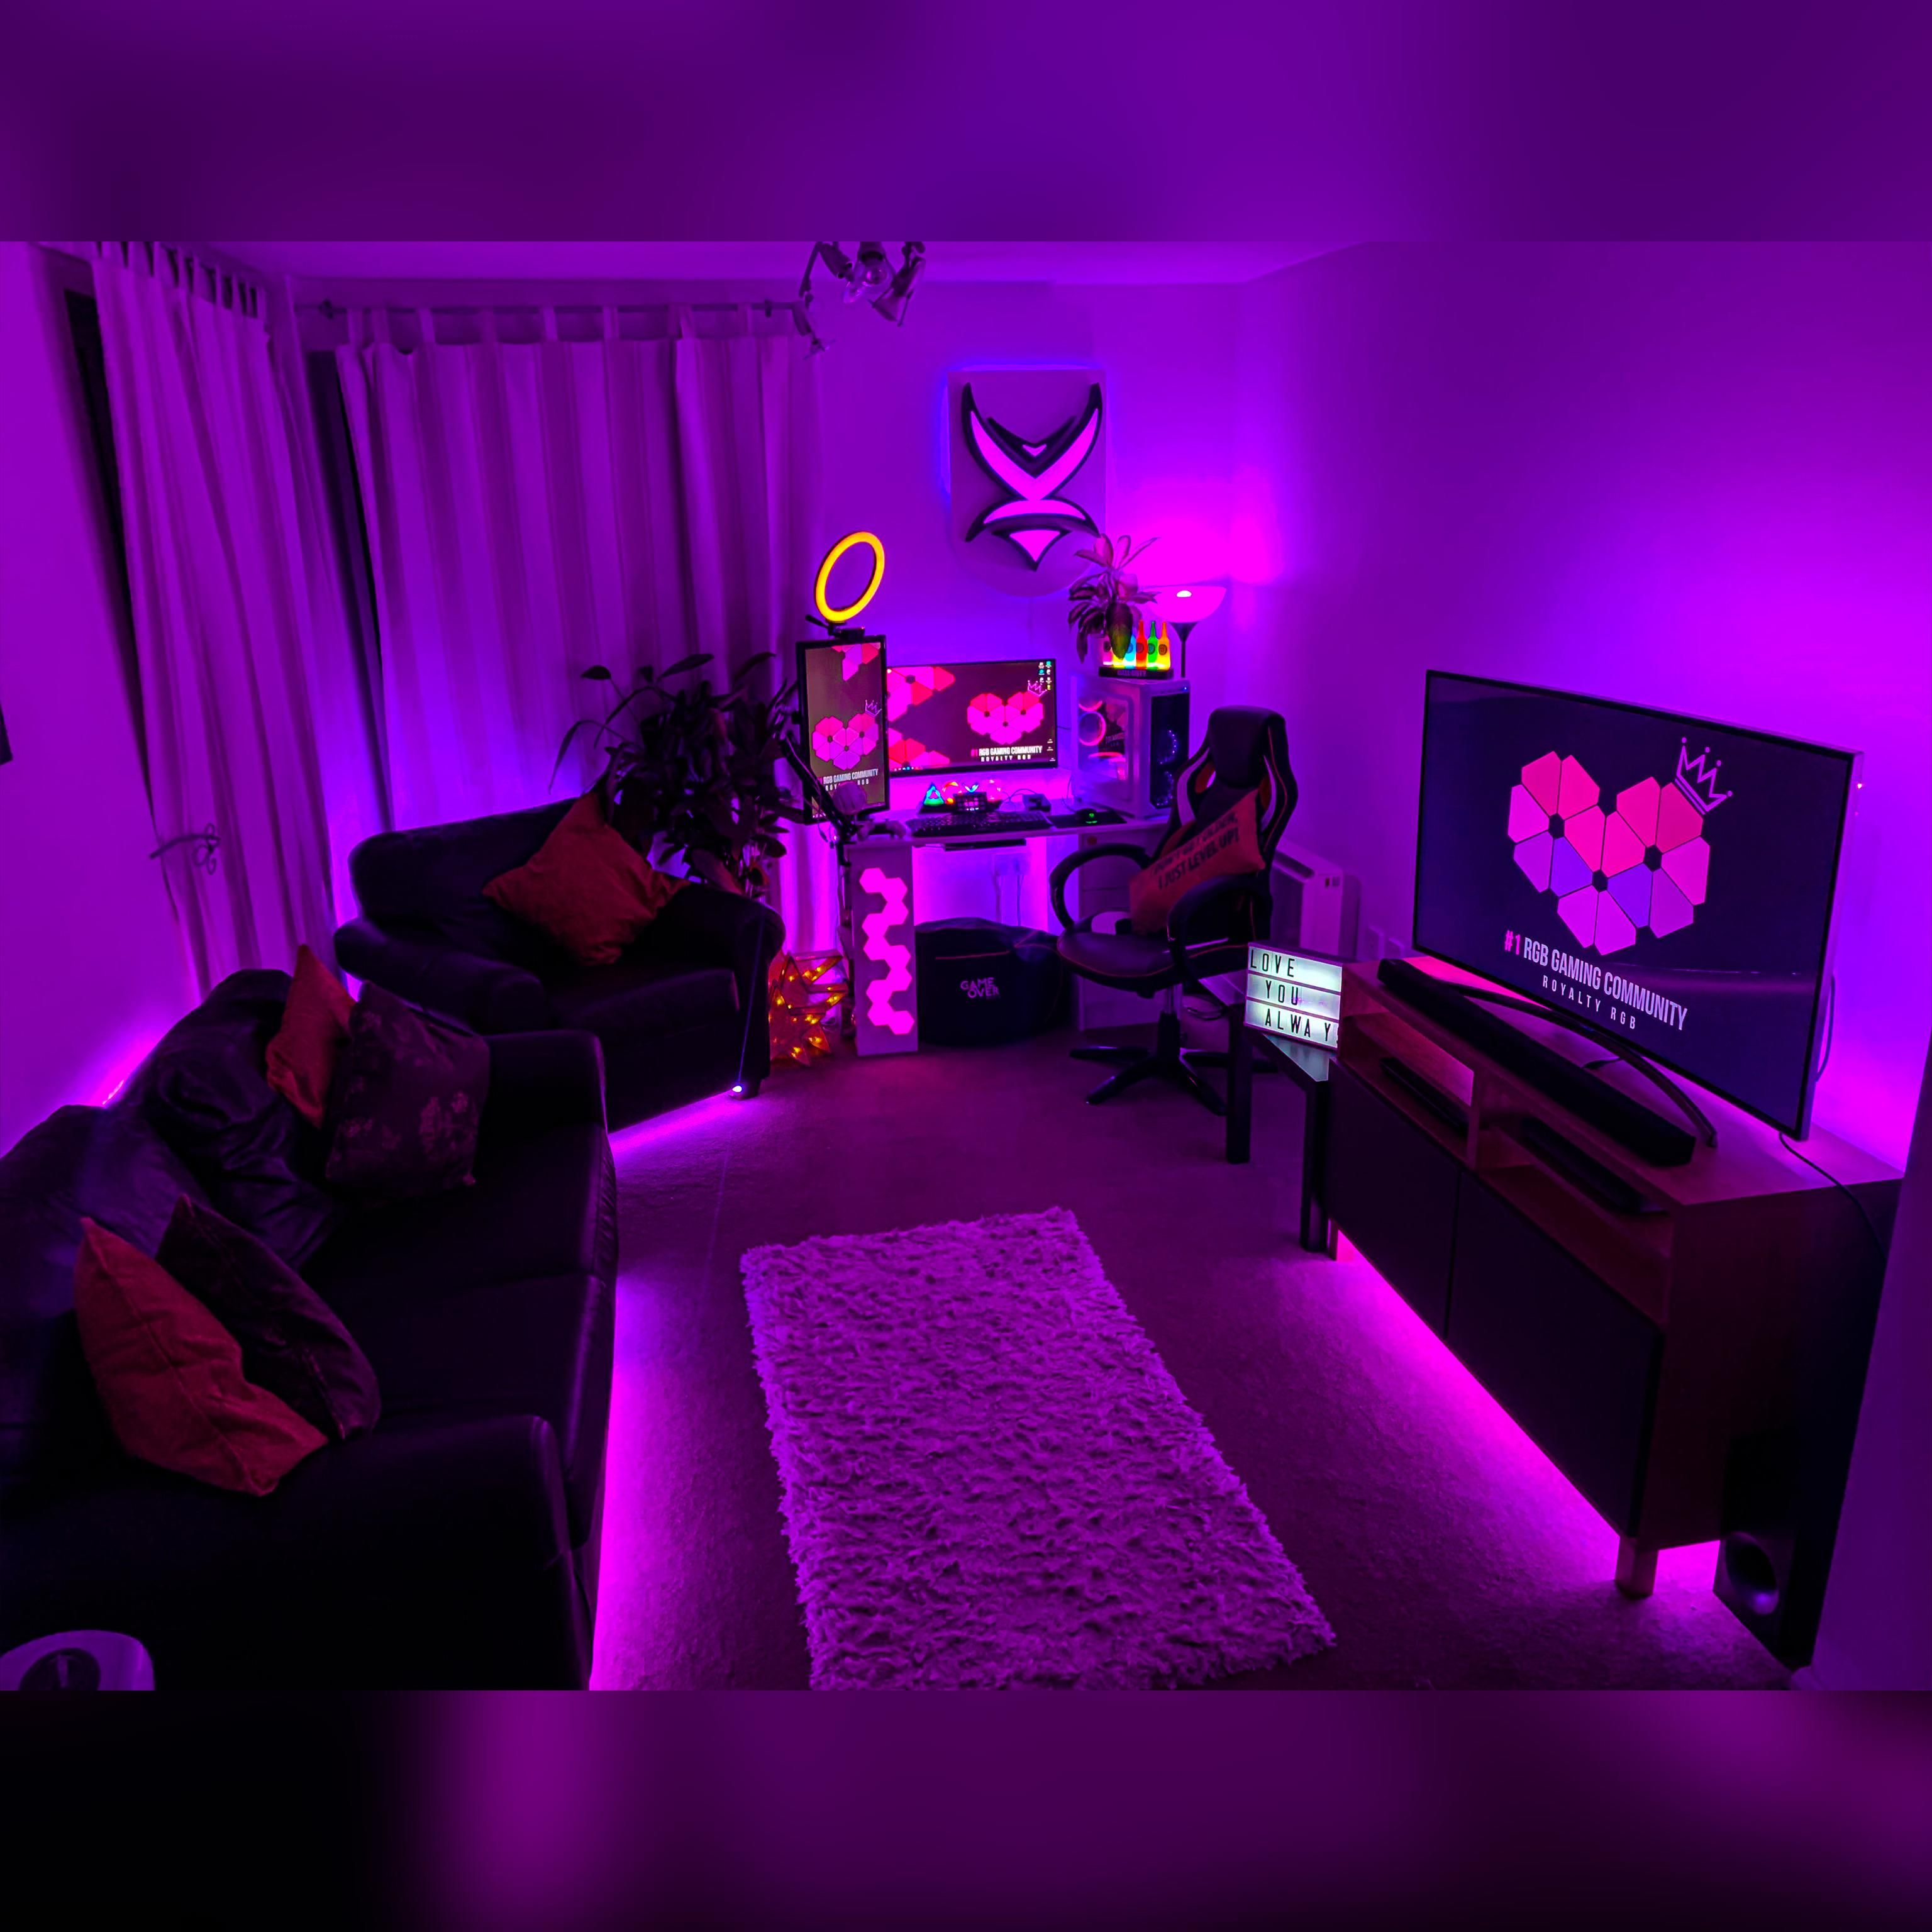 Went All Out With The Purple Game Room Design Gamer Room Decor Room Design Bedroom